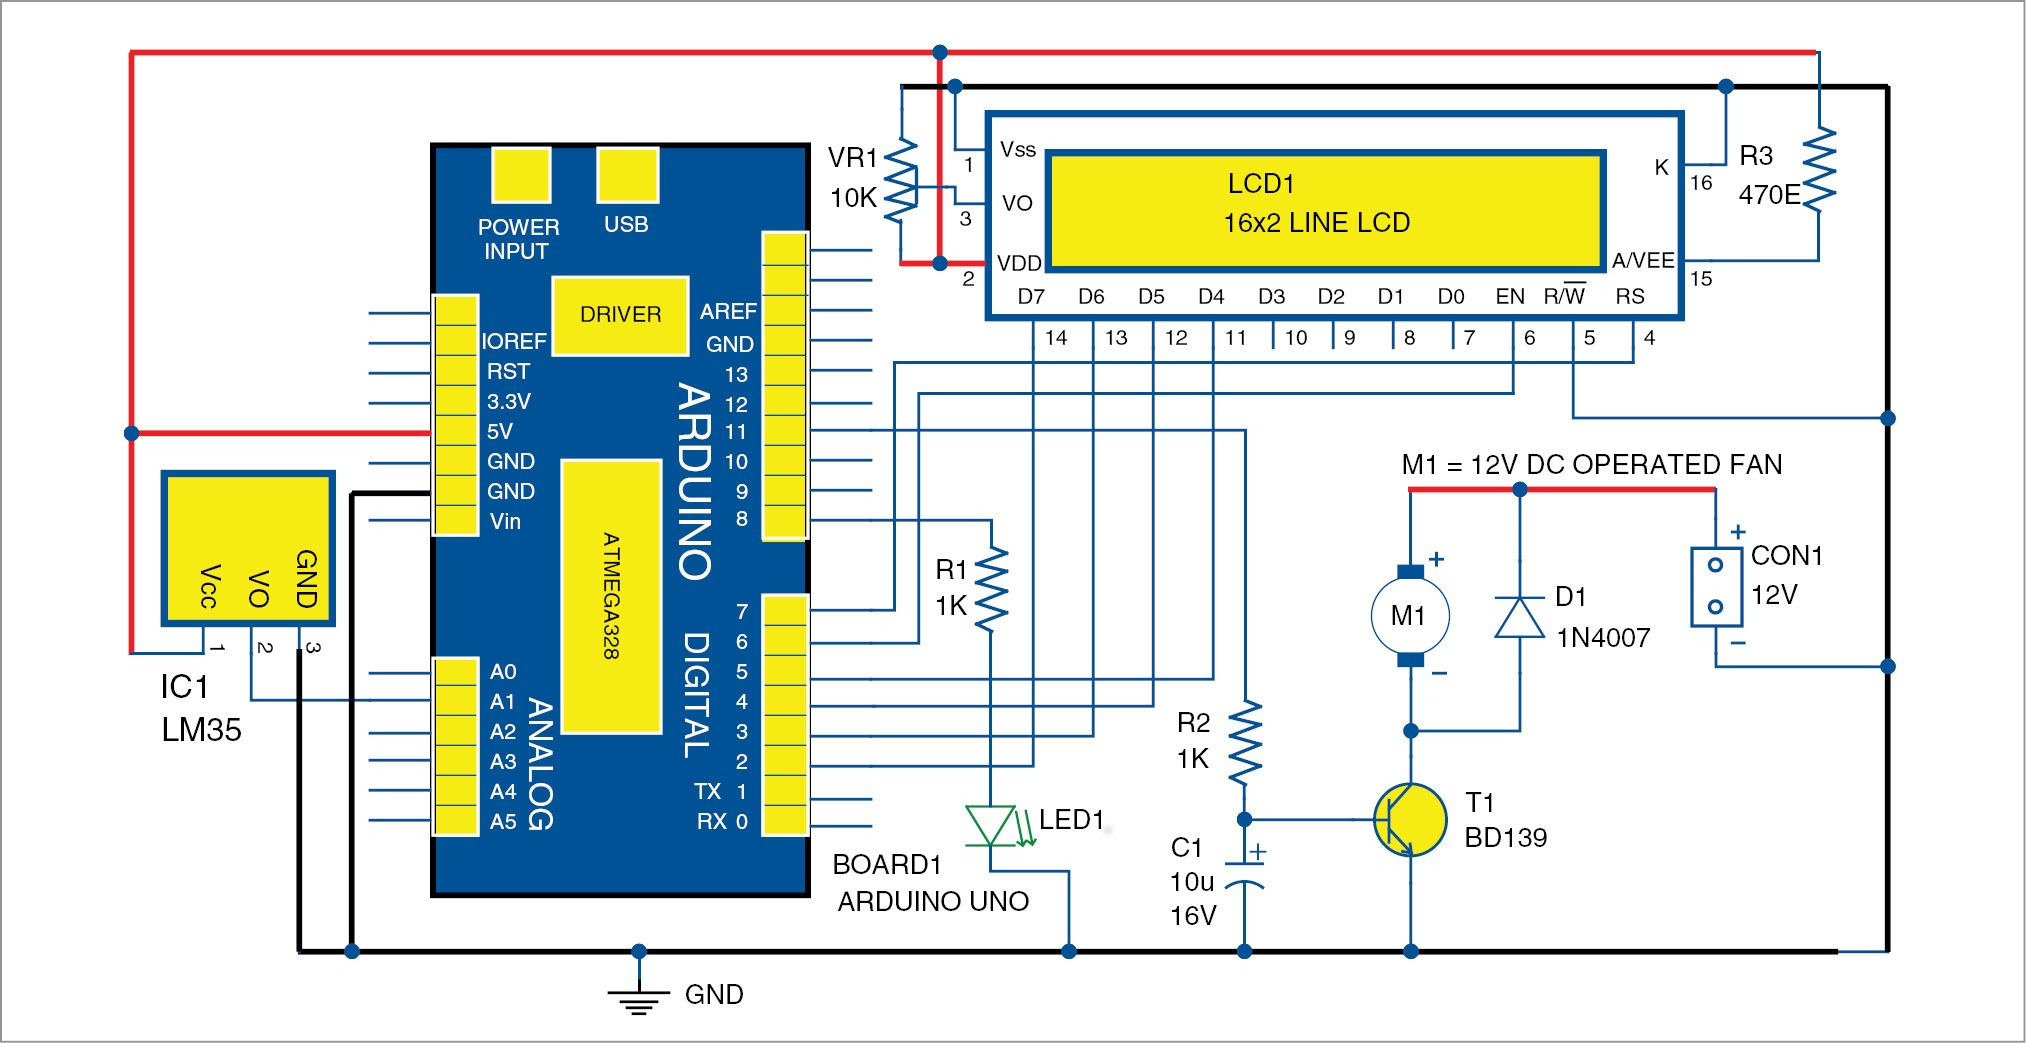 Temperature Based Fan Speed Control And Monitoring Using Arduino Colorsensorcircuit Color Sensor Robotic Microcontroller This Project Is An Automatic That Controls The Of Electric According To Requirement